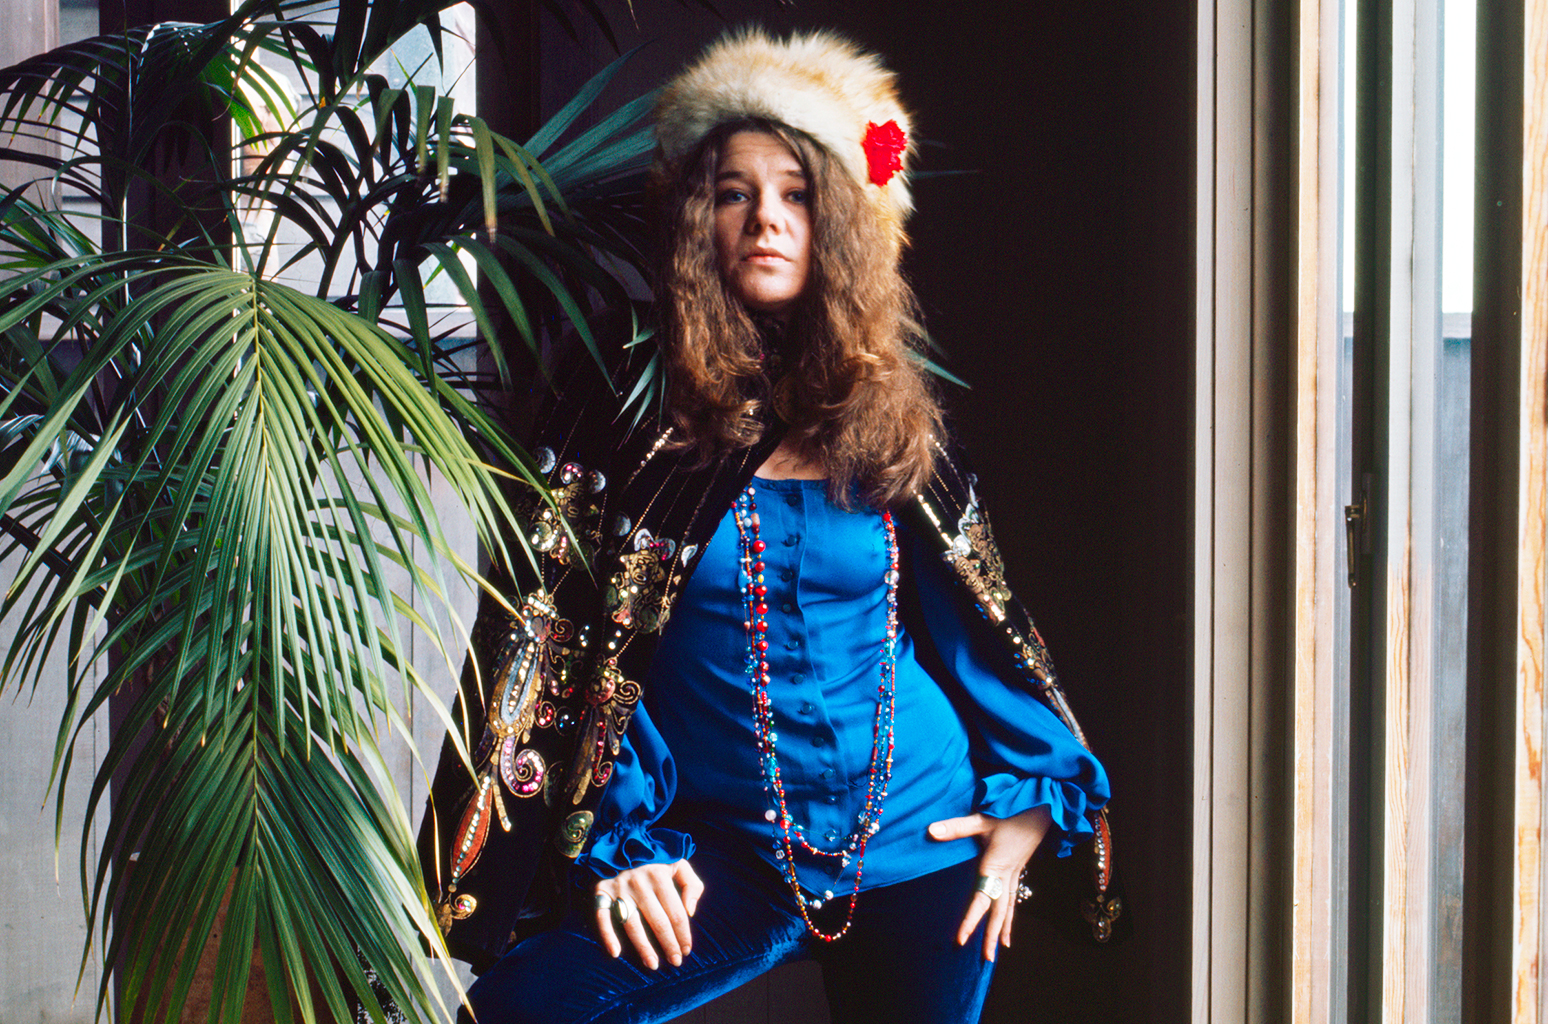 Janis-Joplin-1968-portrait-color-billboard-1548